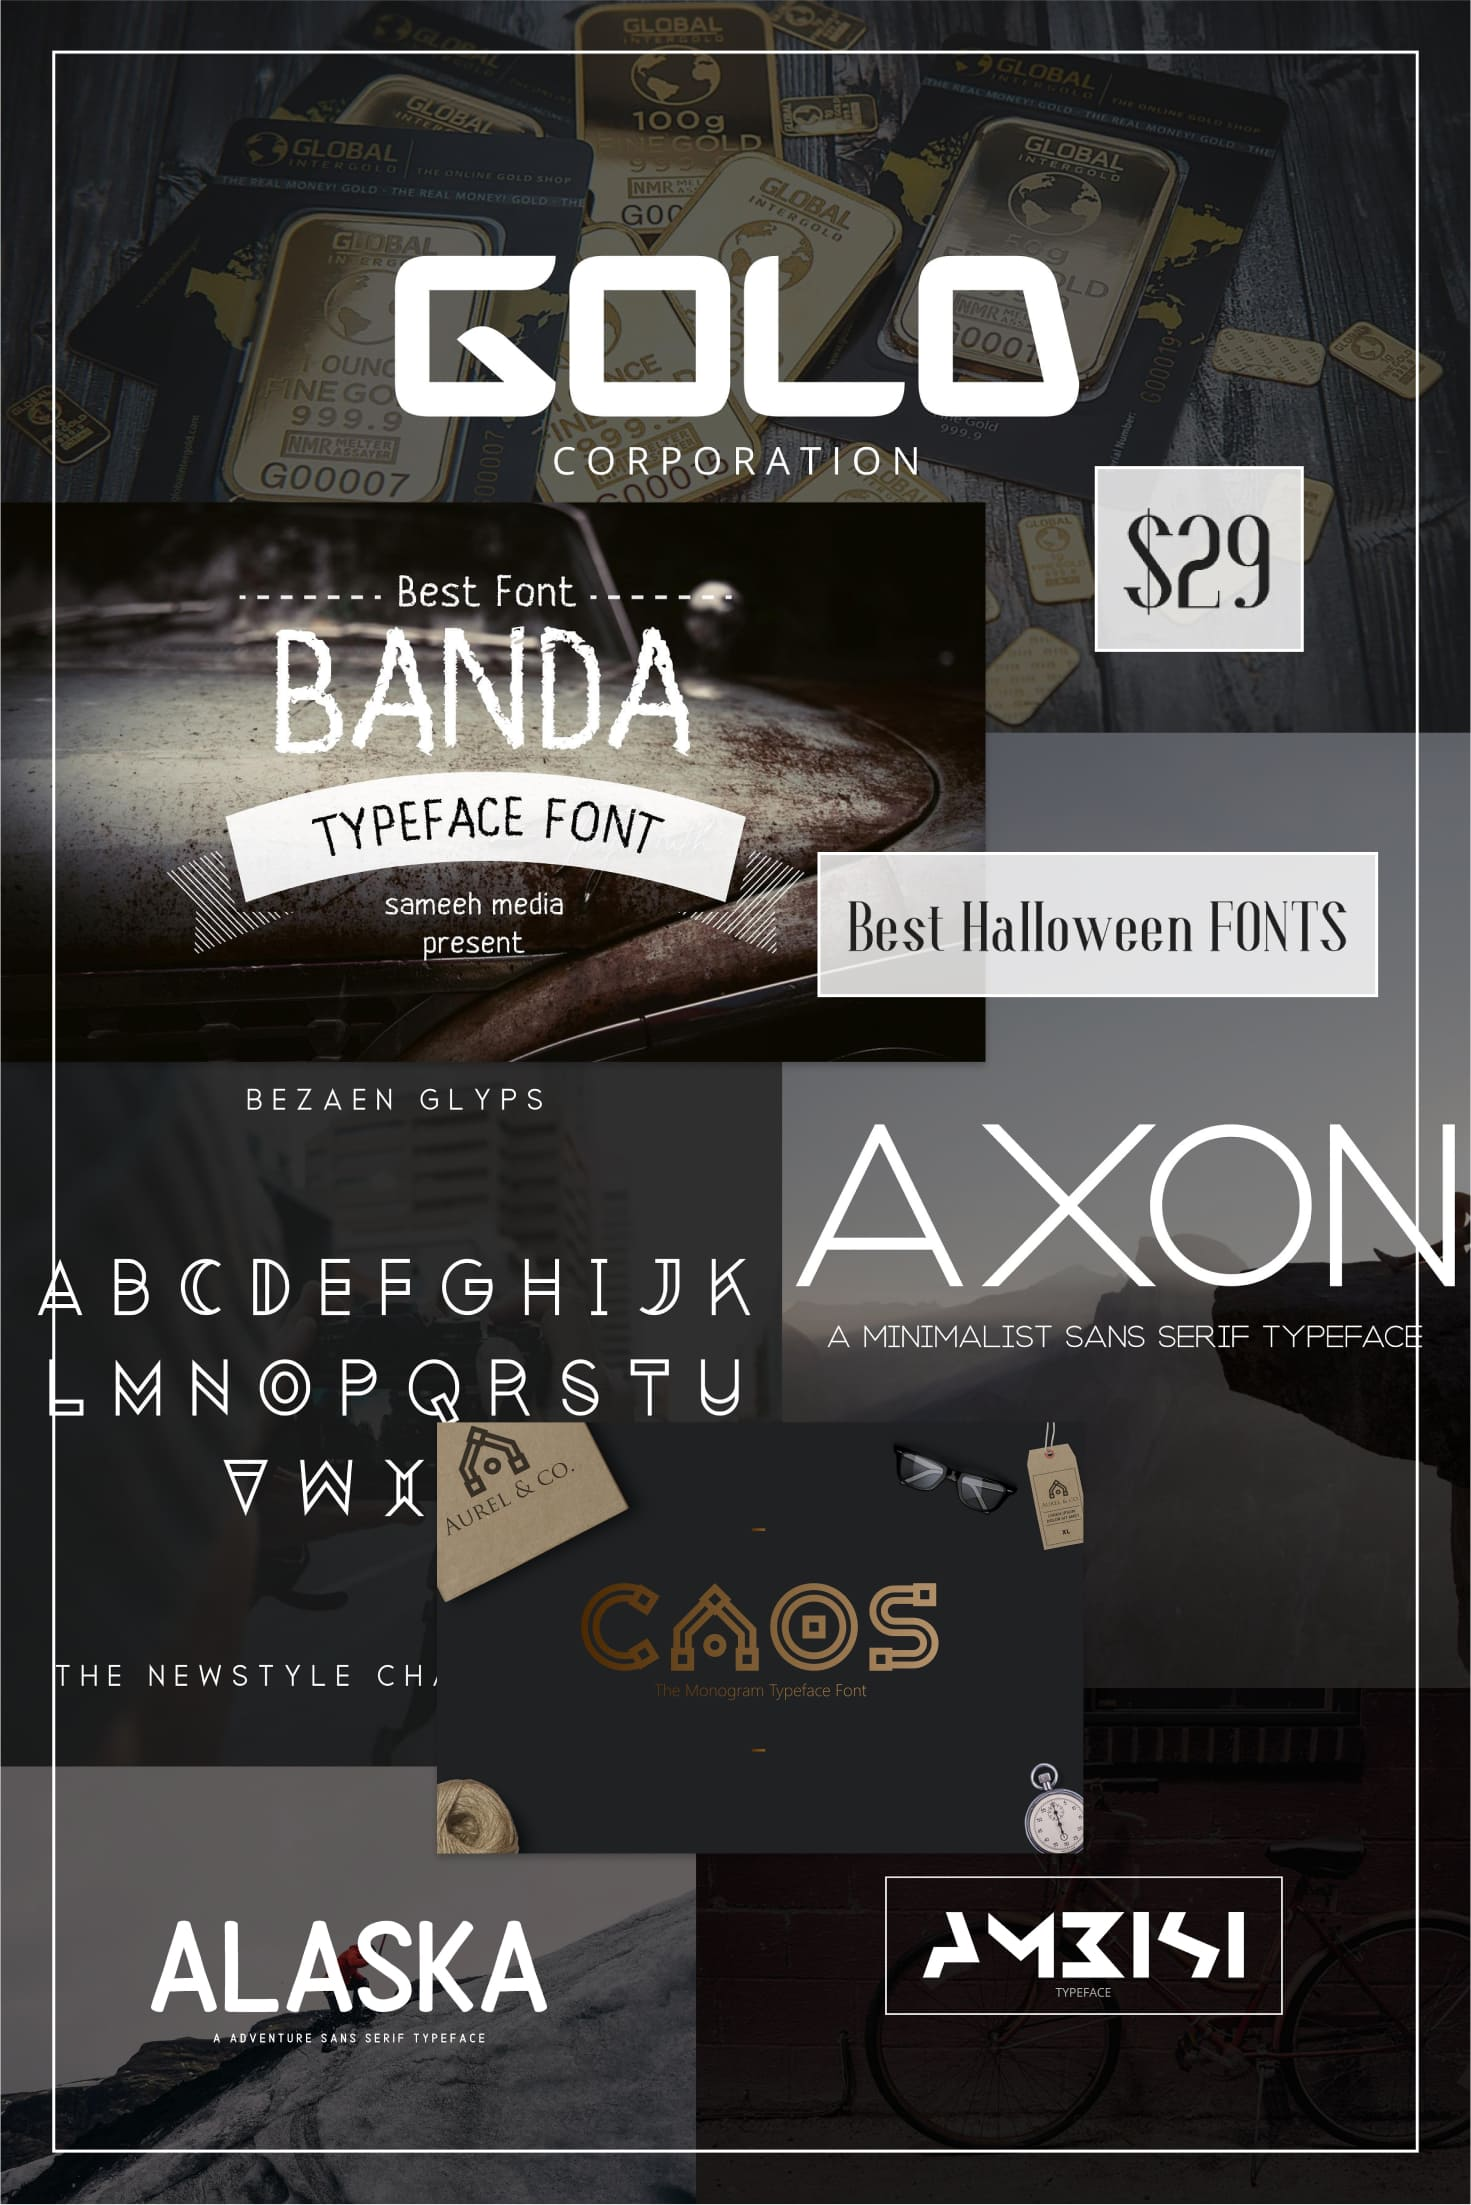 Pinterest Image: Best Halloween FONTS Bundle - $29. 2020 SALE! Halloween Embroidery Fonts.